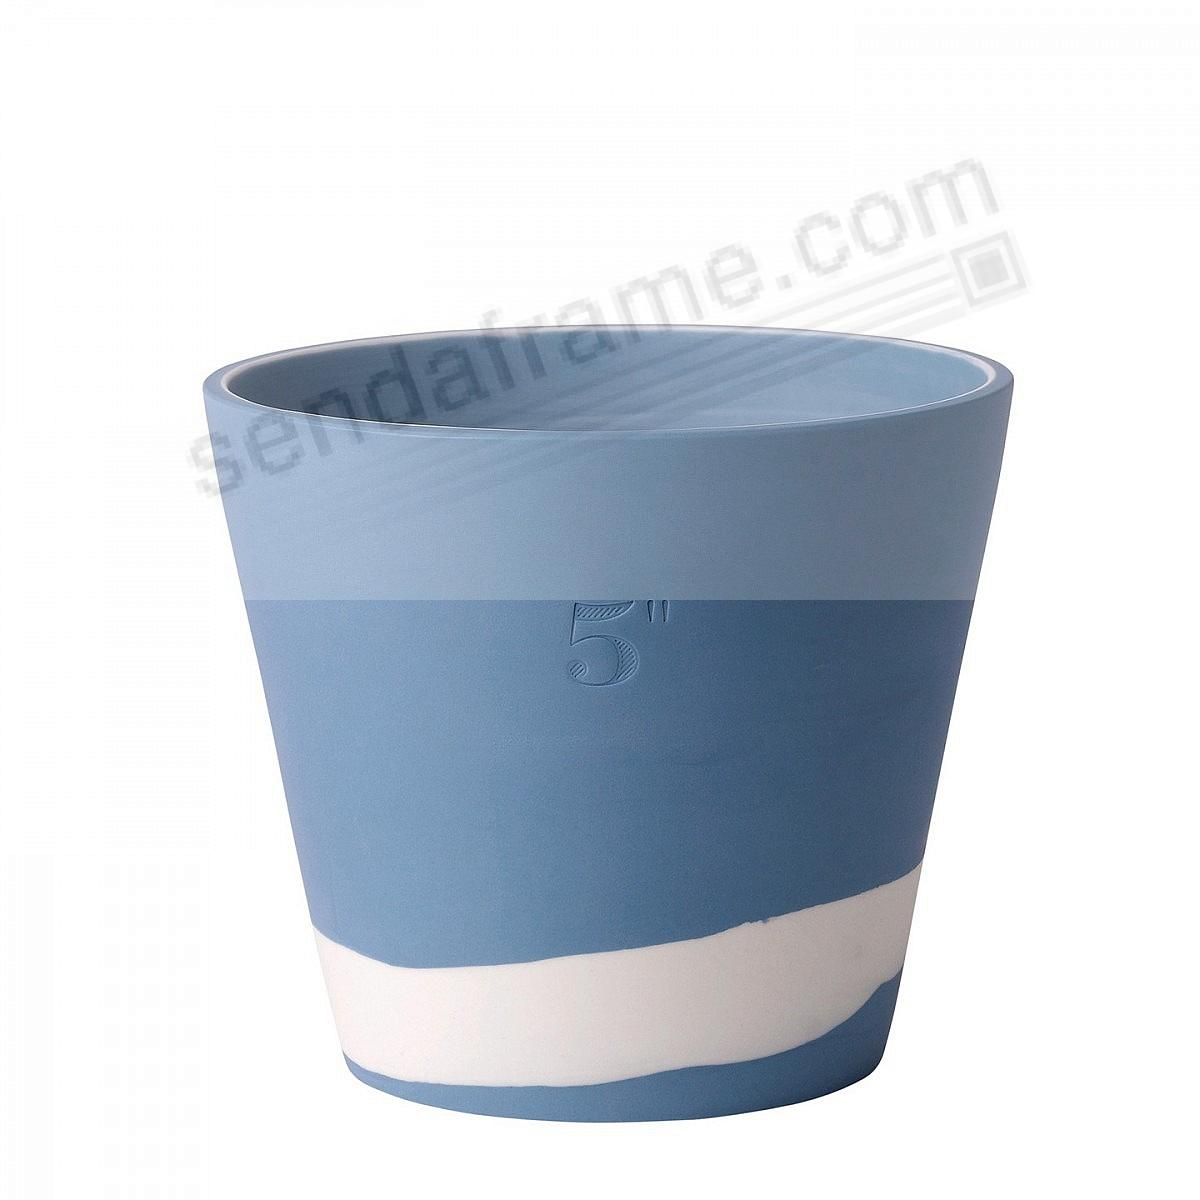 BURLINGTON PLANTER POT Blue+White 5in by Wedgwood®